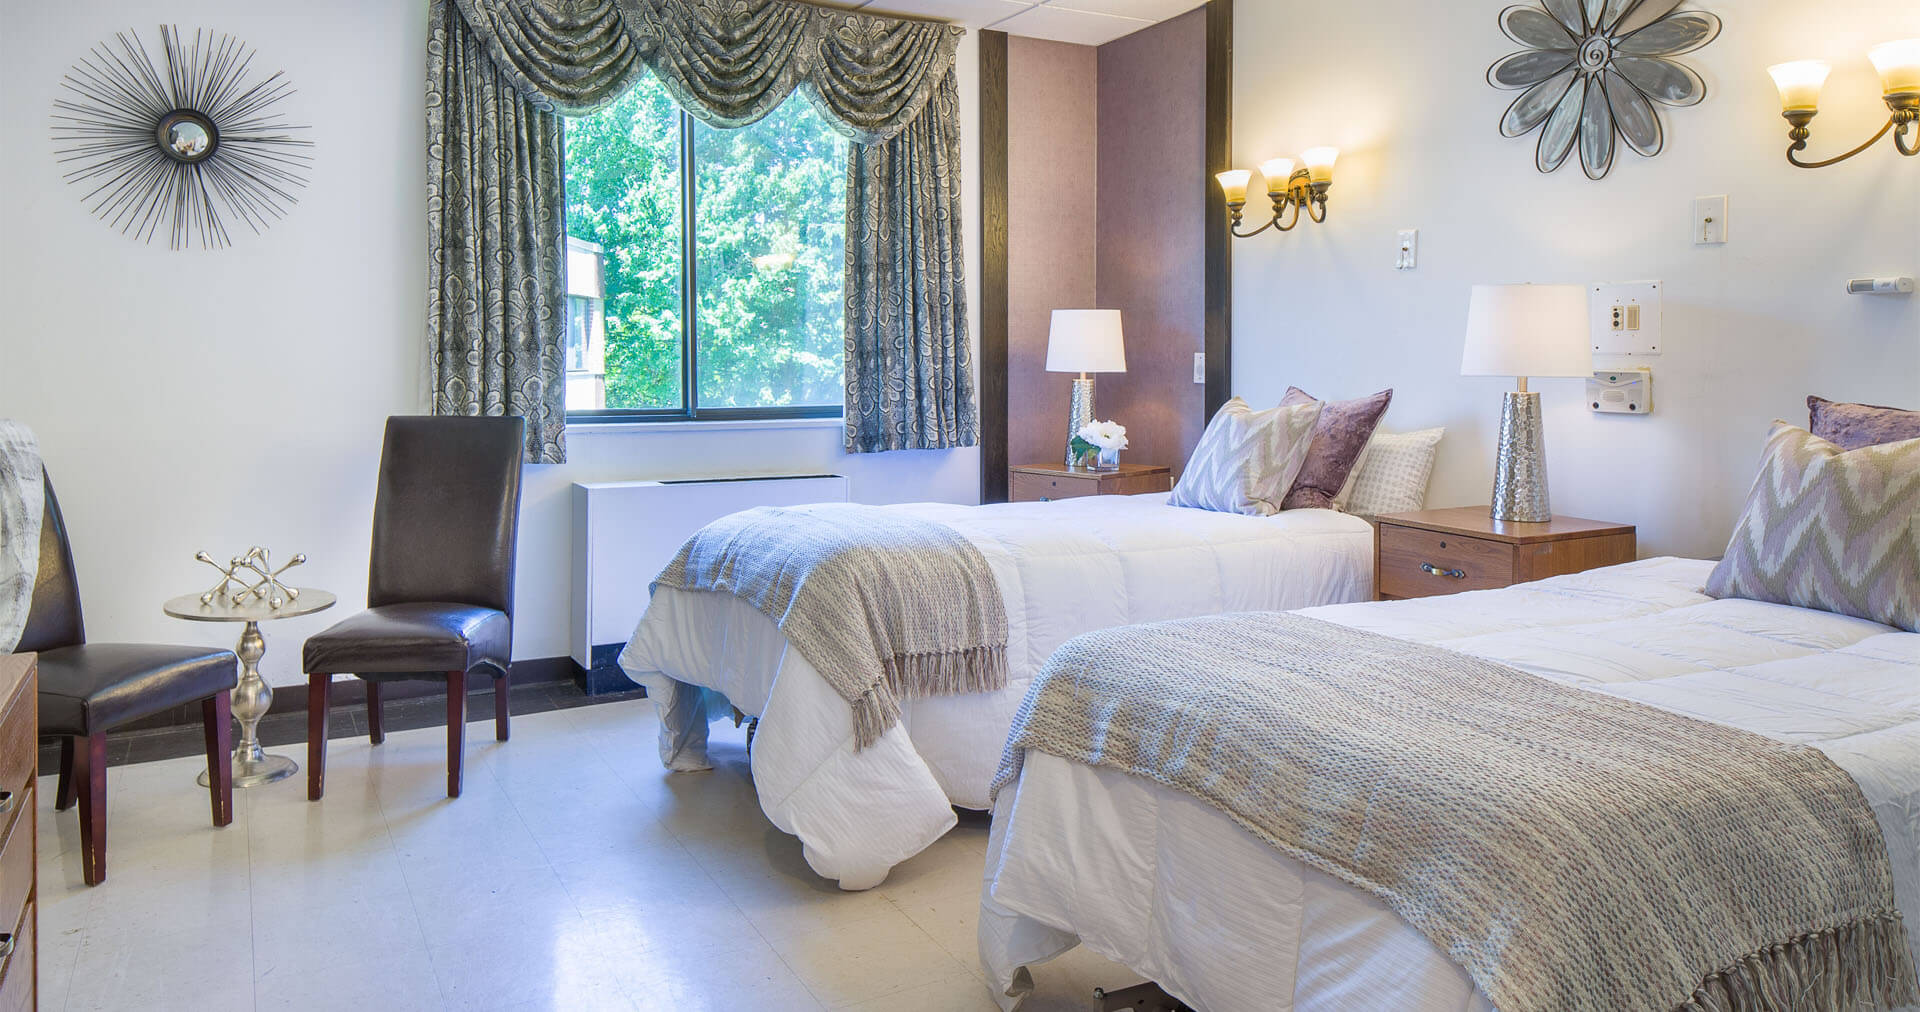 Newly decorated and refurbished rooms